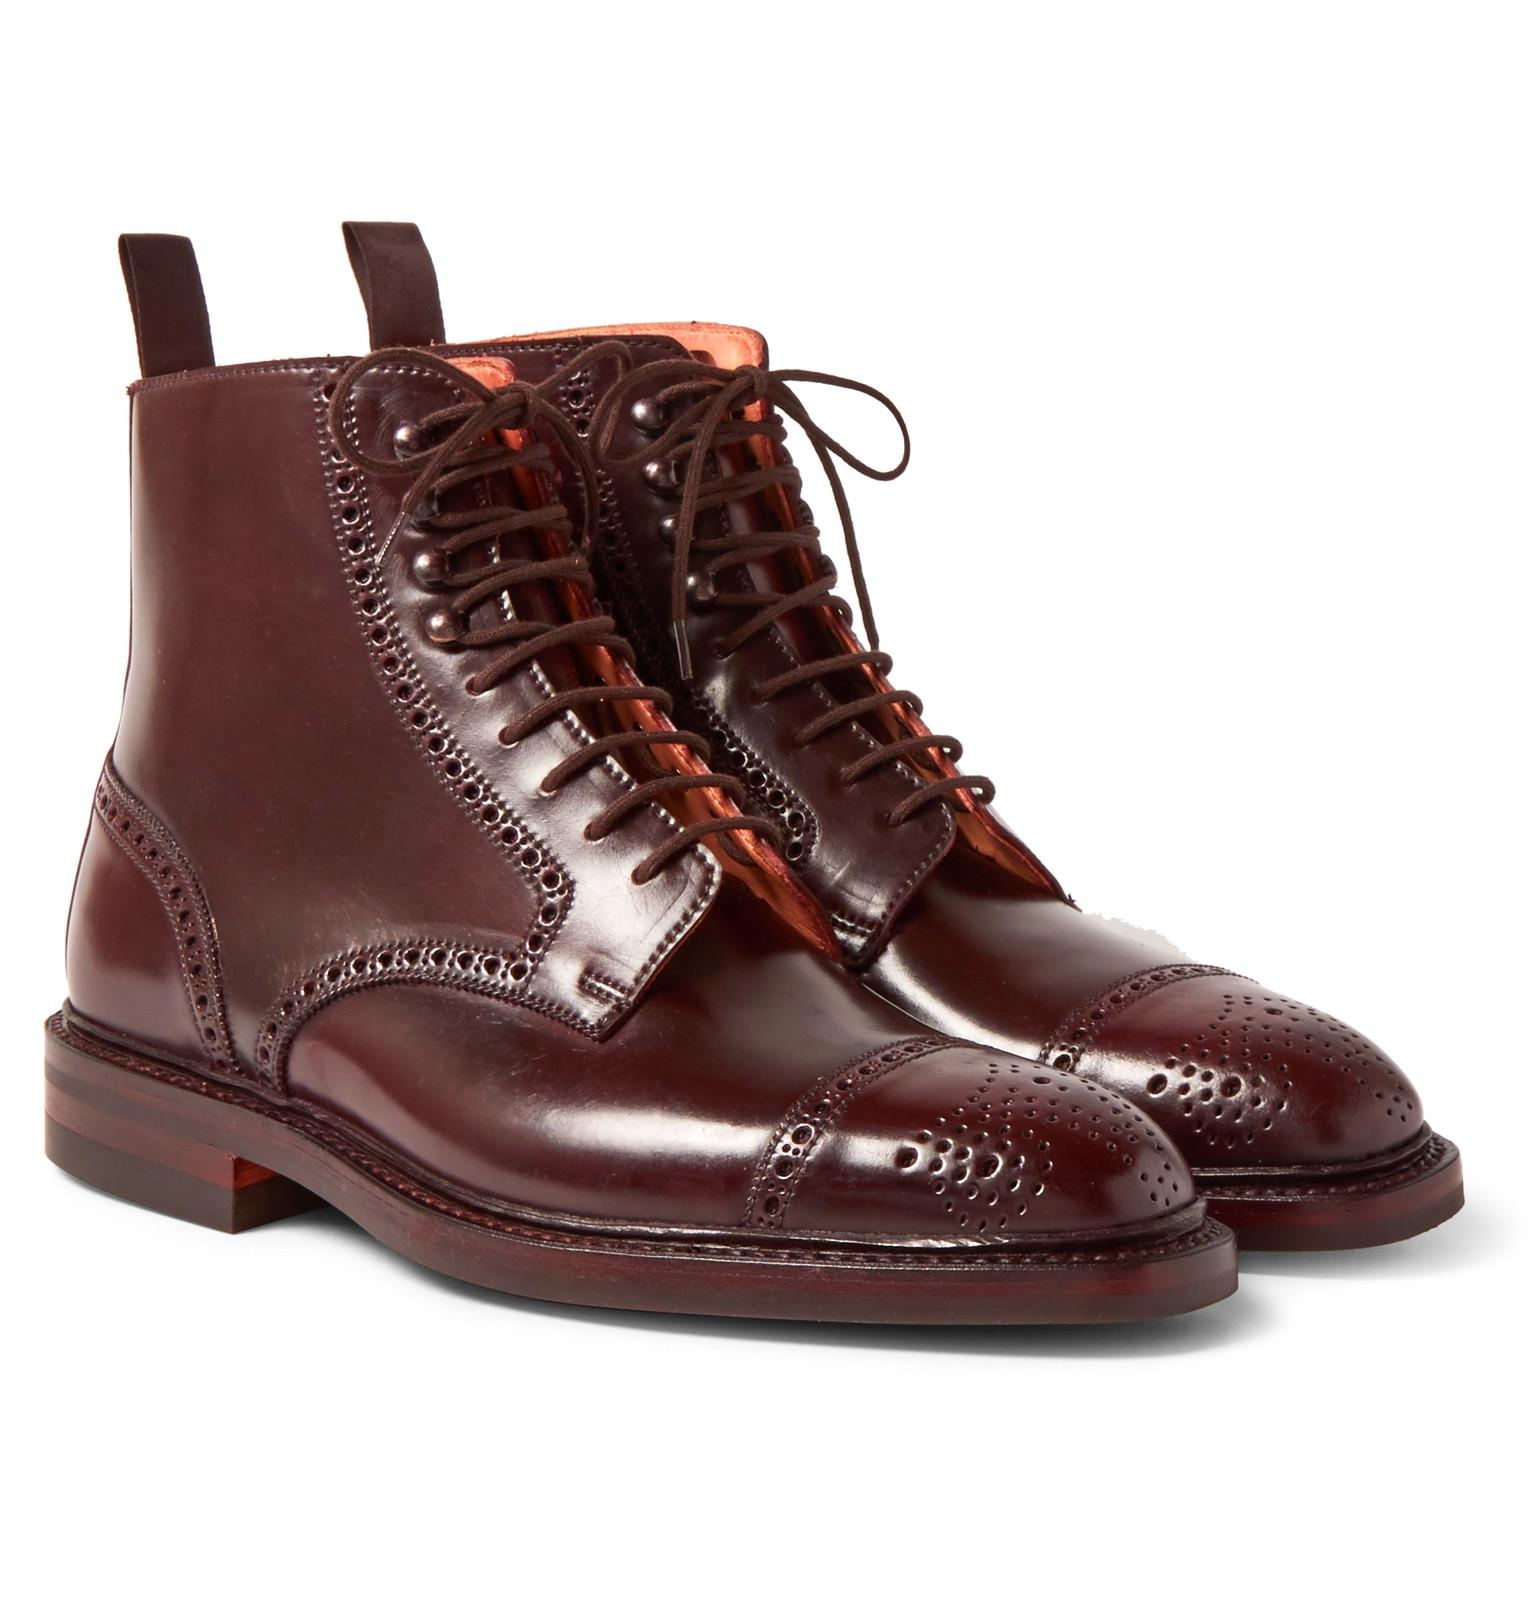 Brogue London Cordovan Oxblood toe cap perforated Heinrich Dinkelacker Outlet Store For Sale Wide Range Of Online How Much s5gd5MA